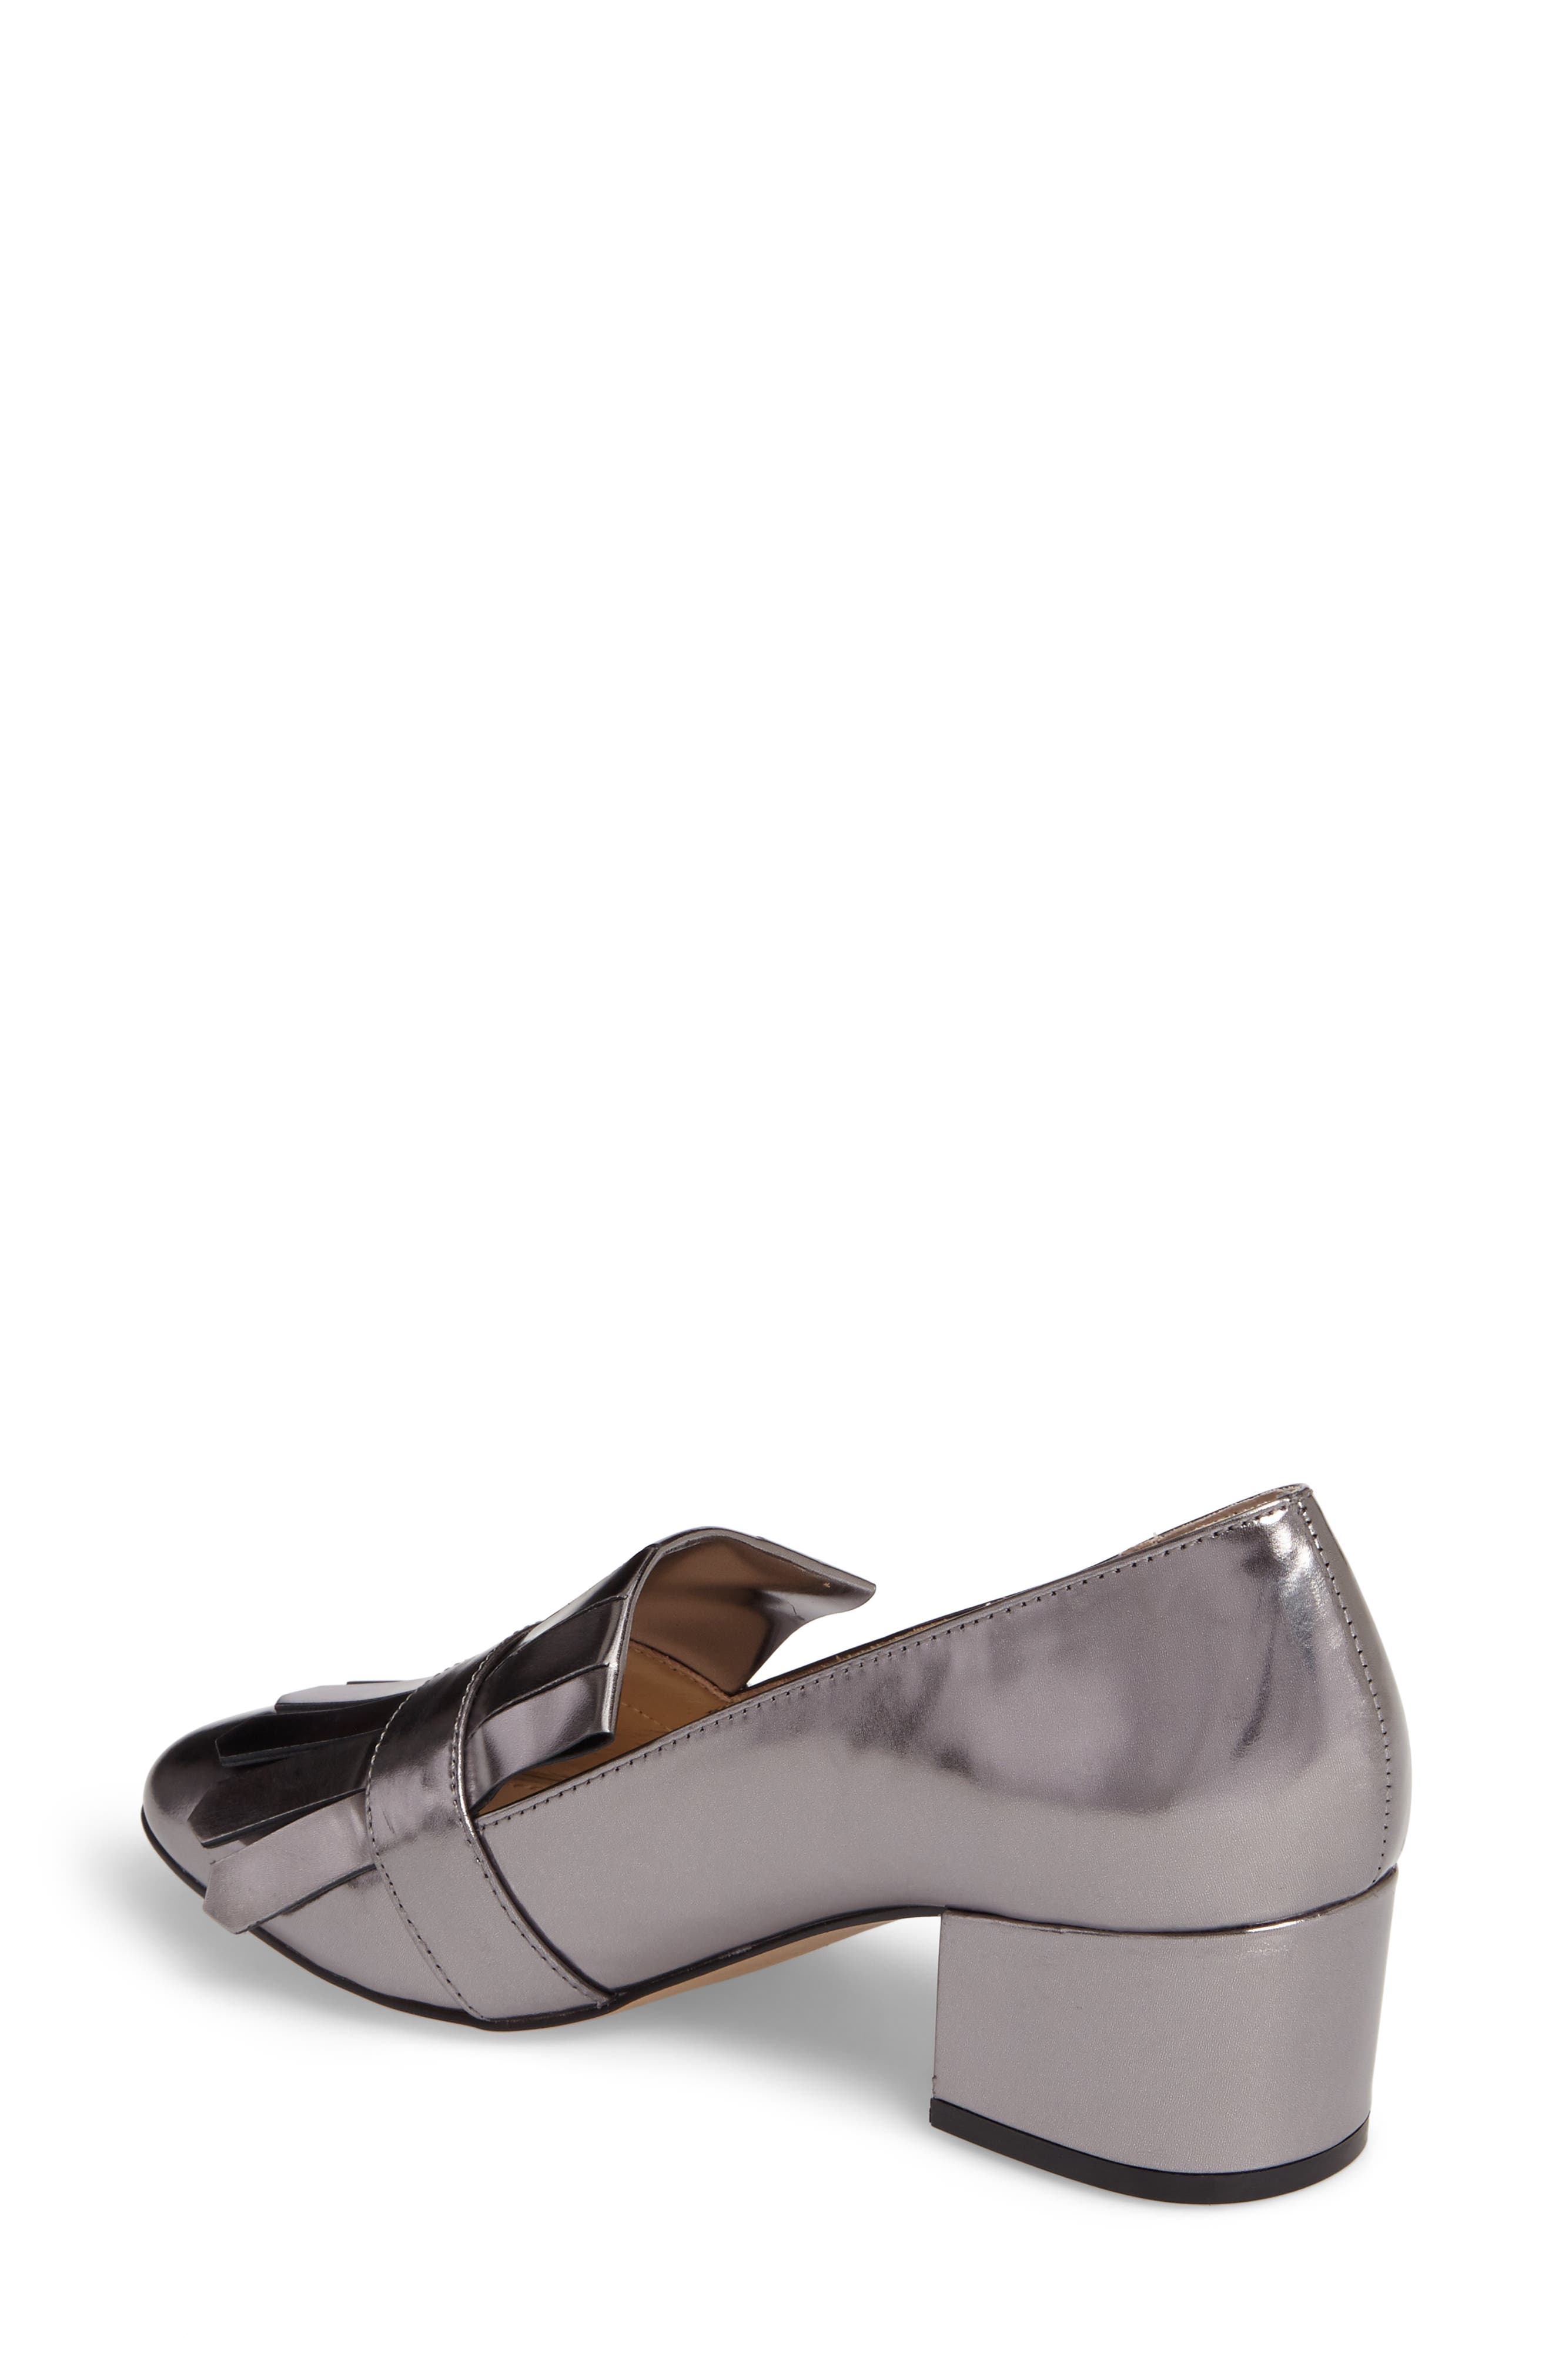 Olive Loafer Pump,                             Alternate thumbnail 2, color,                             PEWTER LEATHER